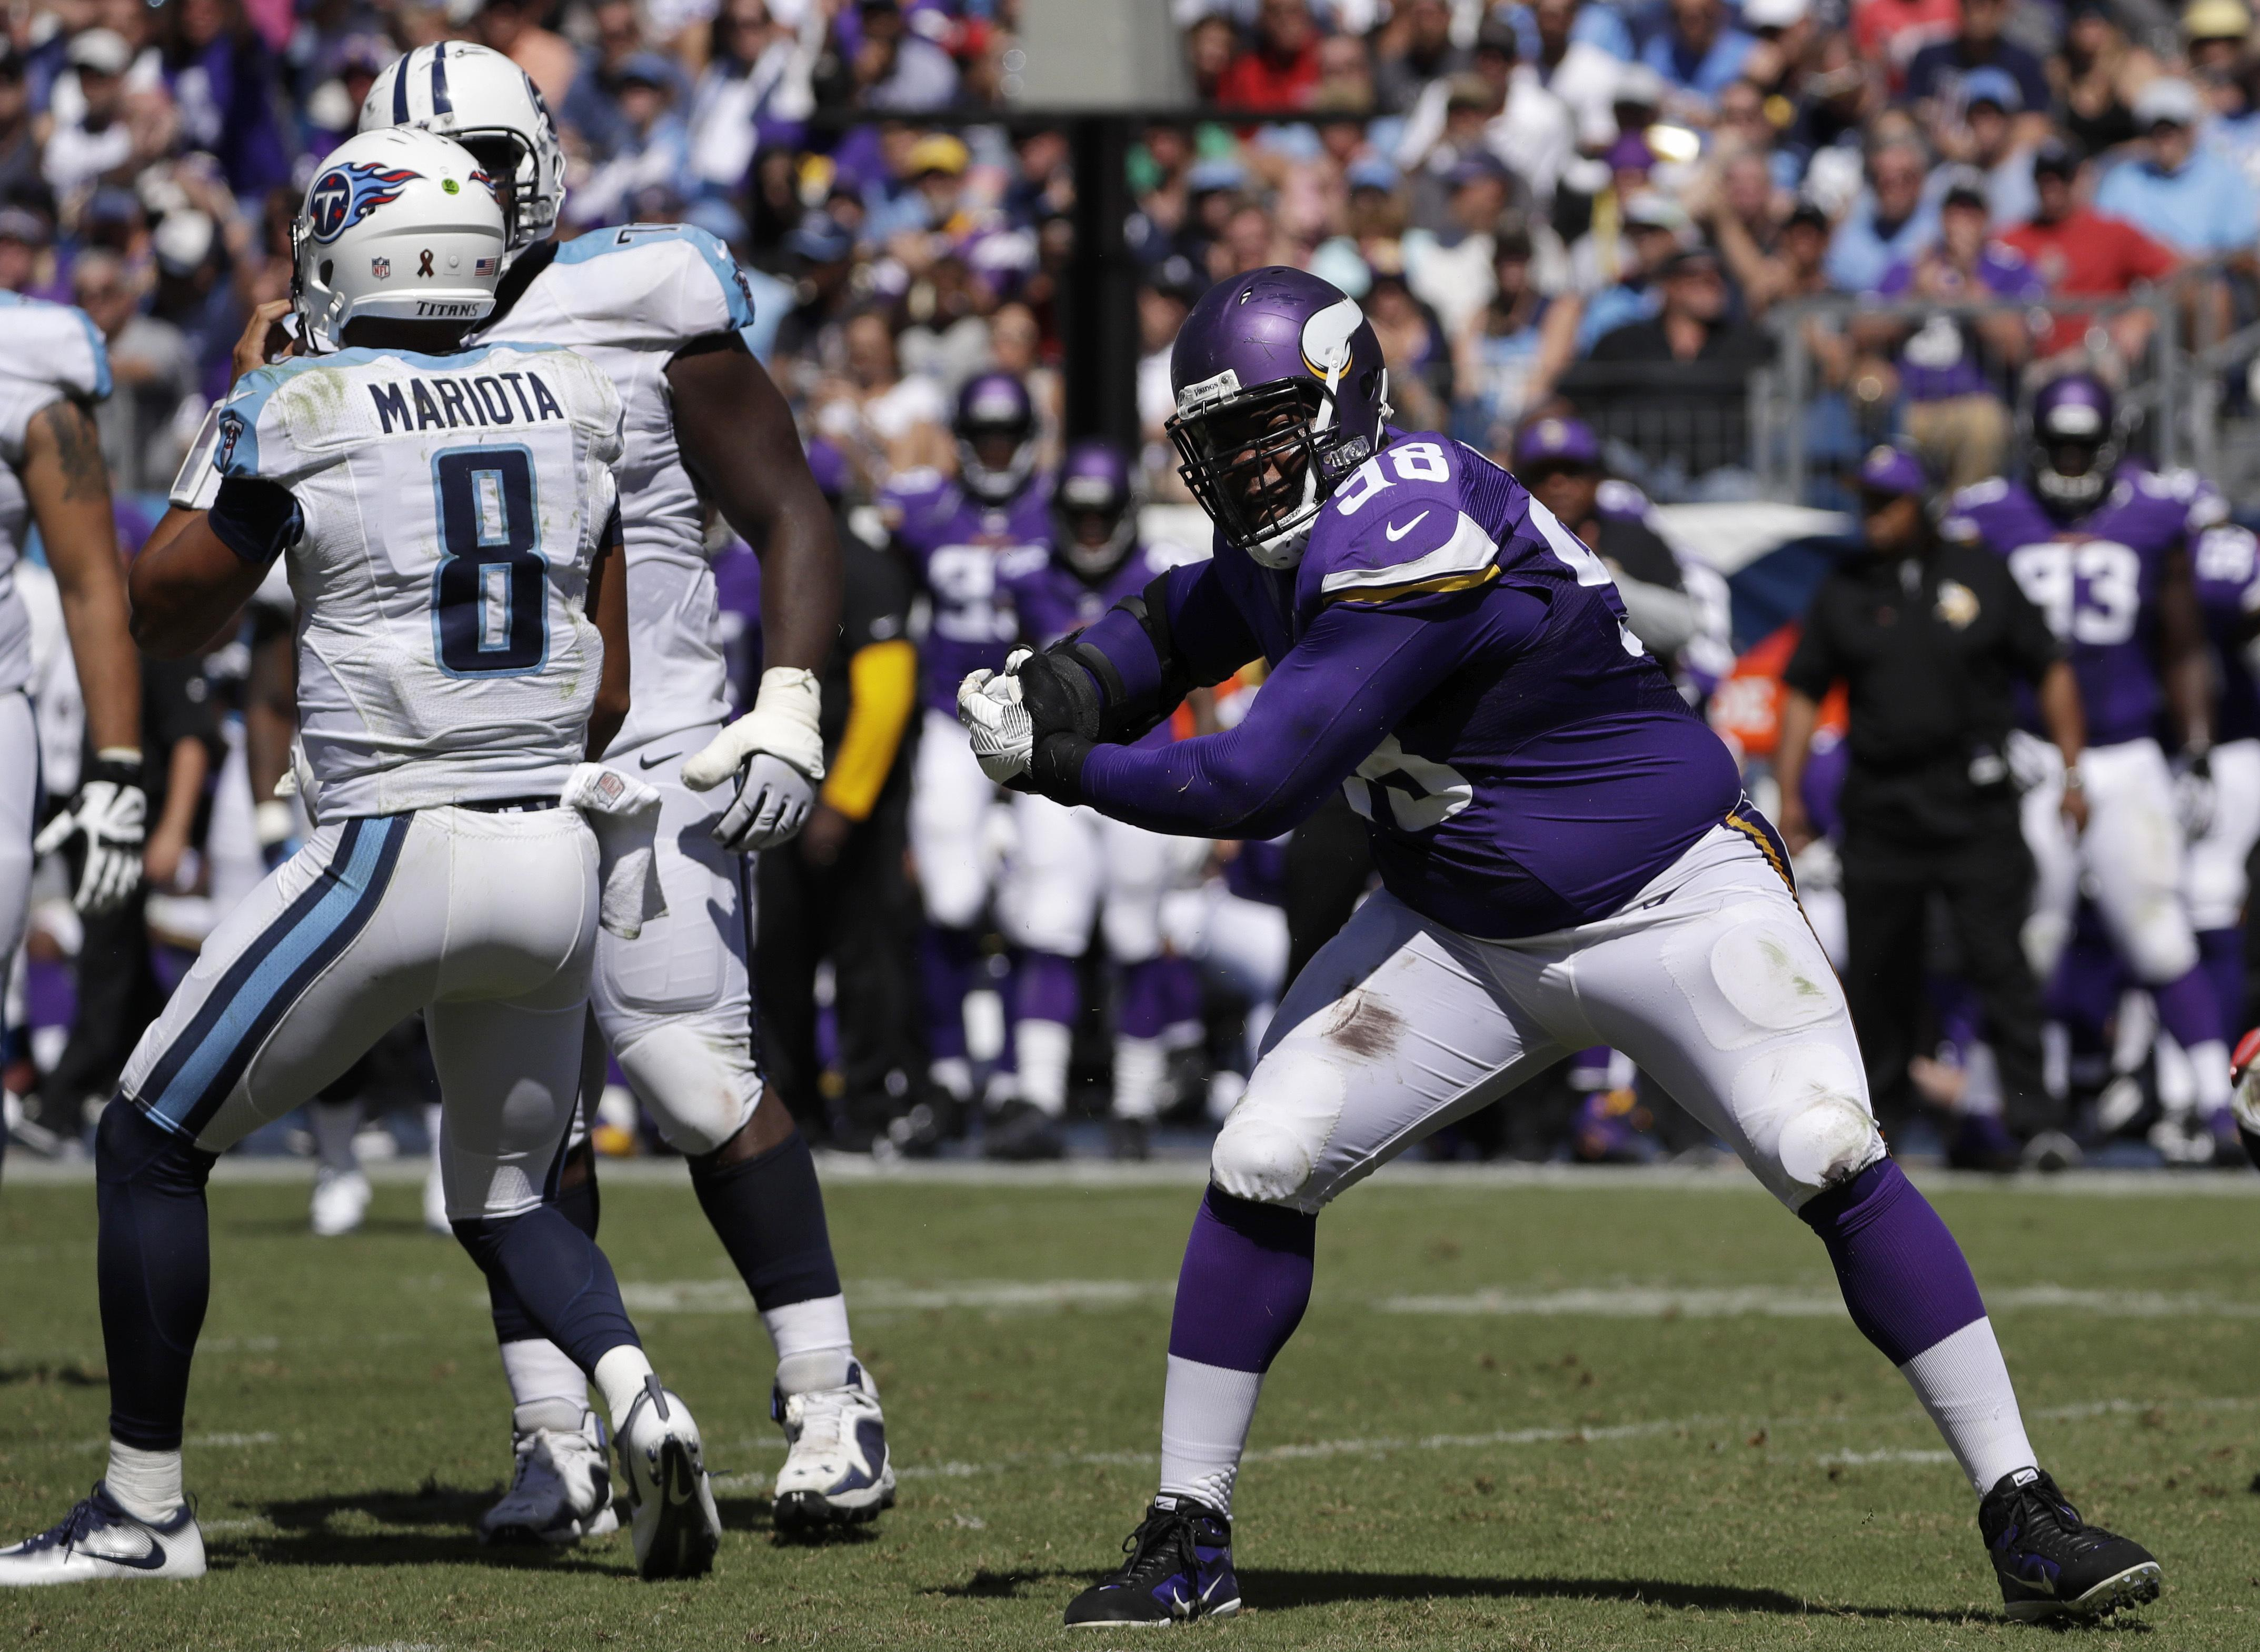 Vikings_monster_in_the_middle_football